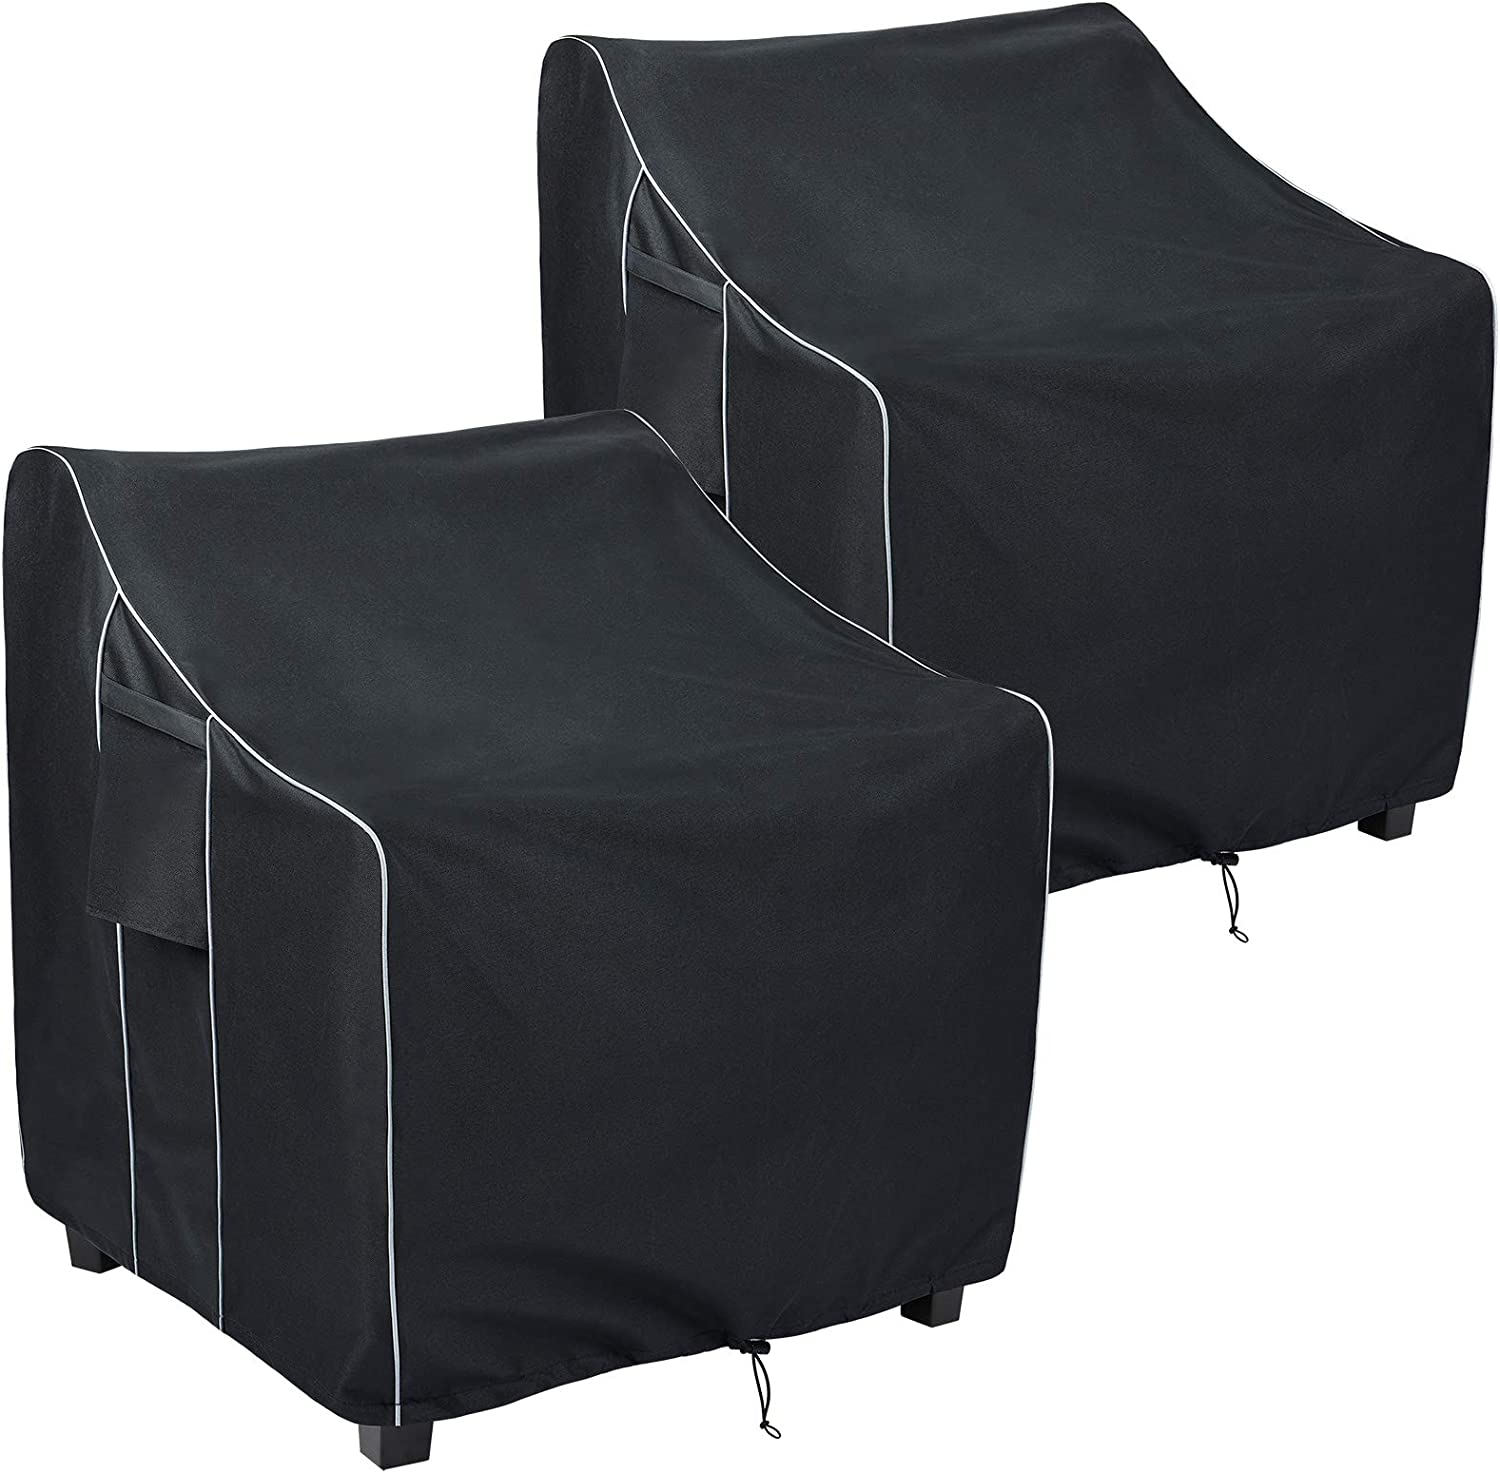 FORSPARK Patio Chair Covers Heavy Duty Outdoor Furniture Covers Waterproof Fits up to 30 x 27 x 36 inches(W x D x H) 2 Pack